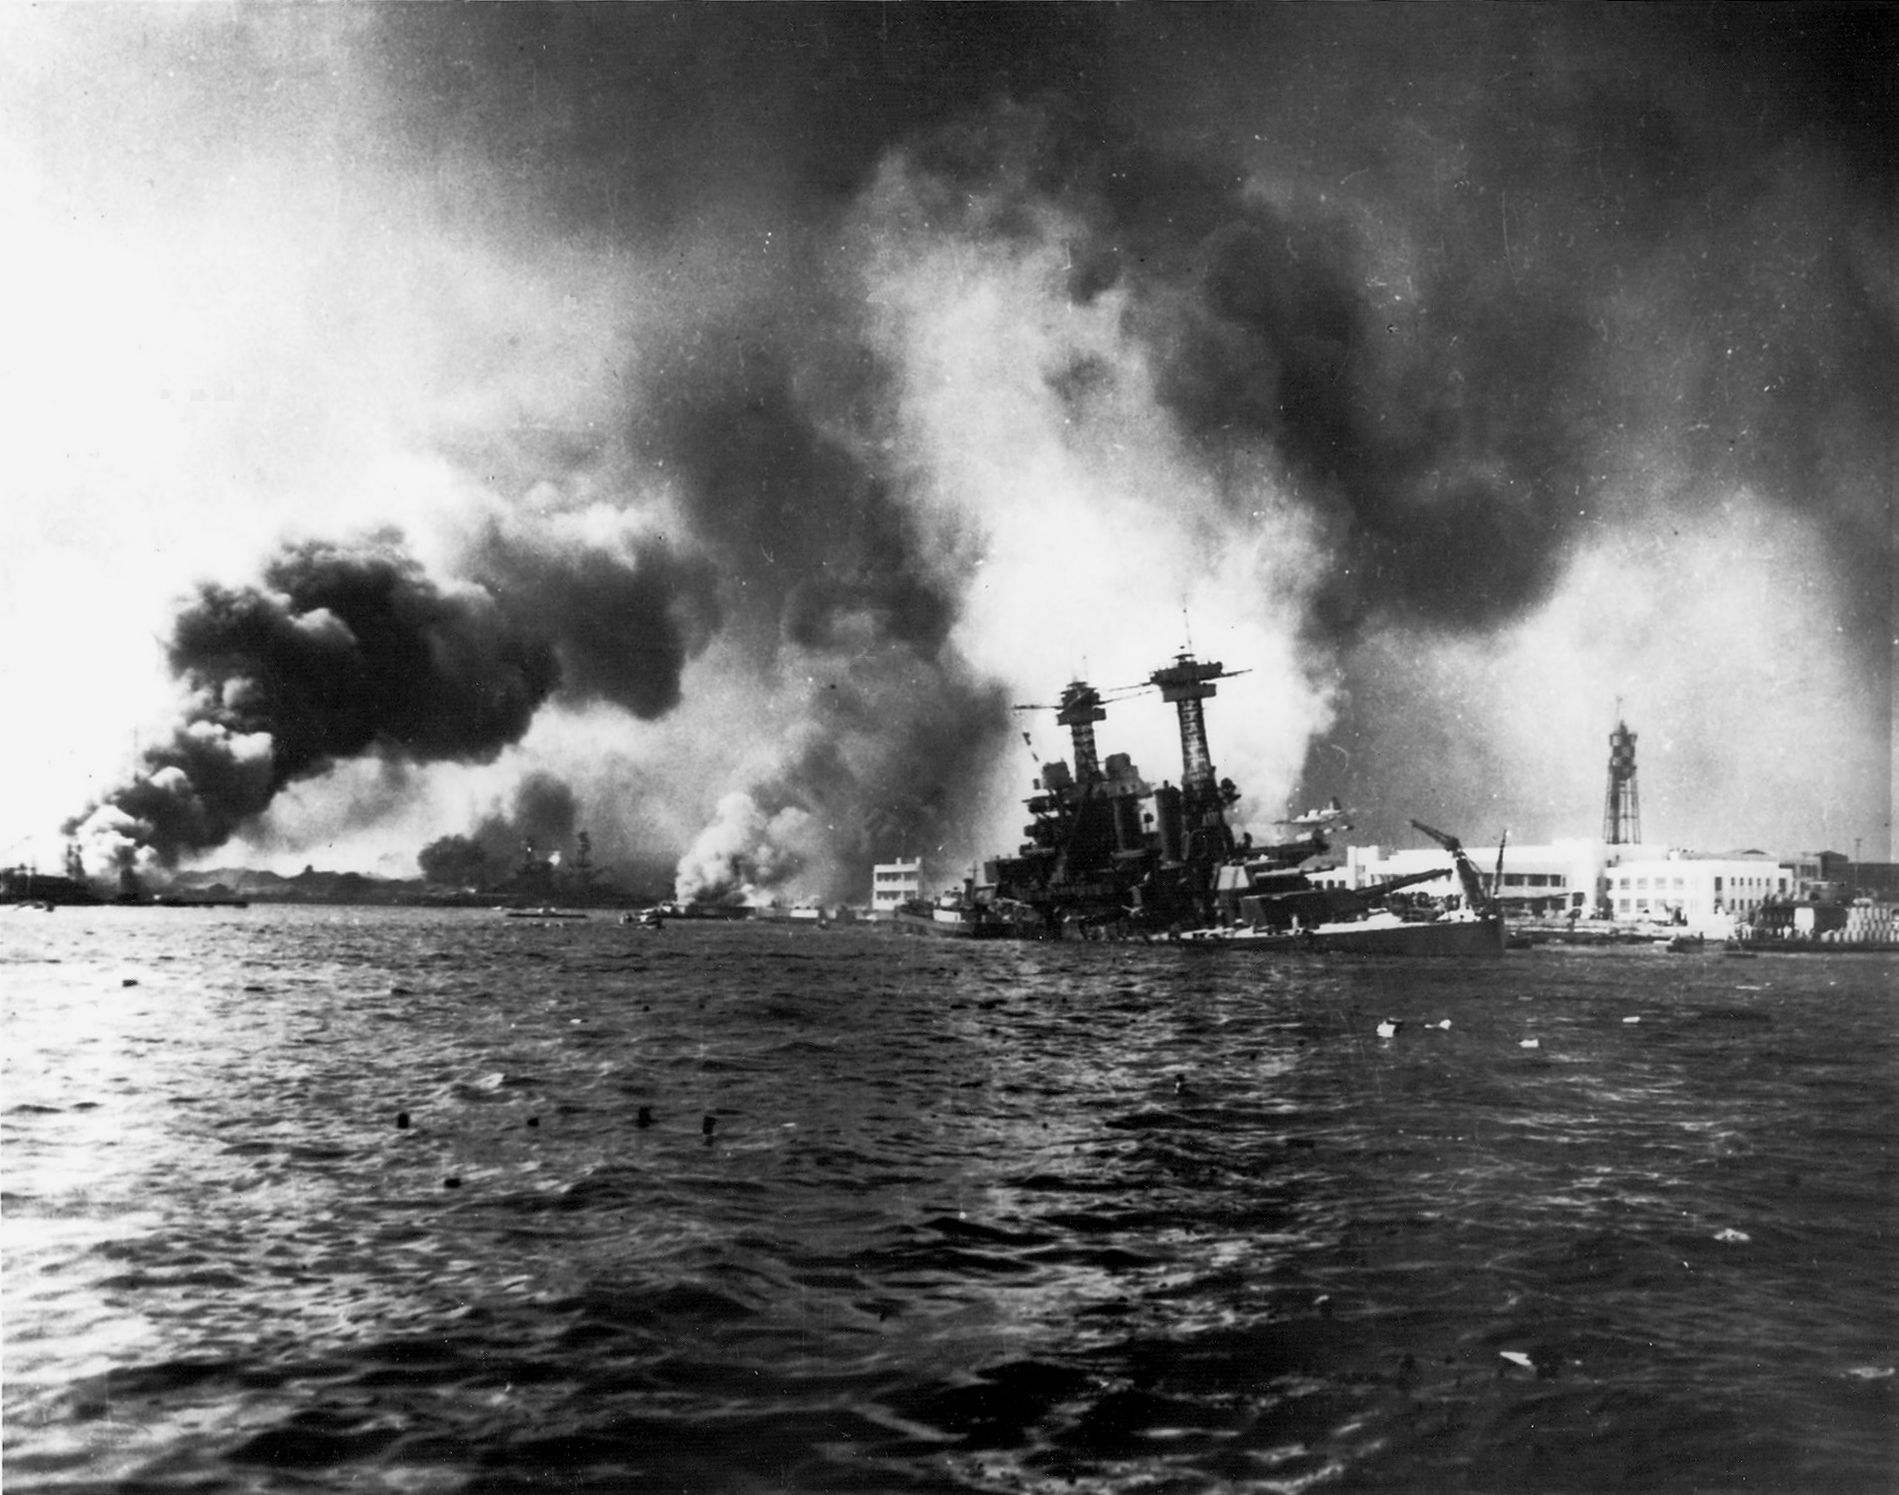 best ideas about pearl harbor casualties pearl 17 best ideas about pearl harbor casualties pearl harbor ww2 history and pearl harbor 1941